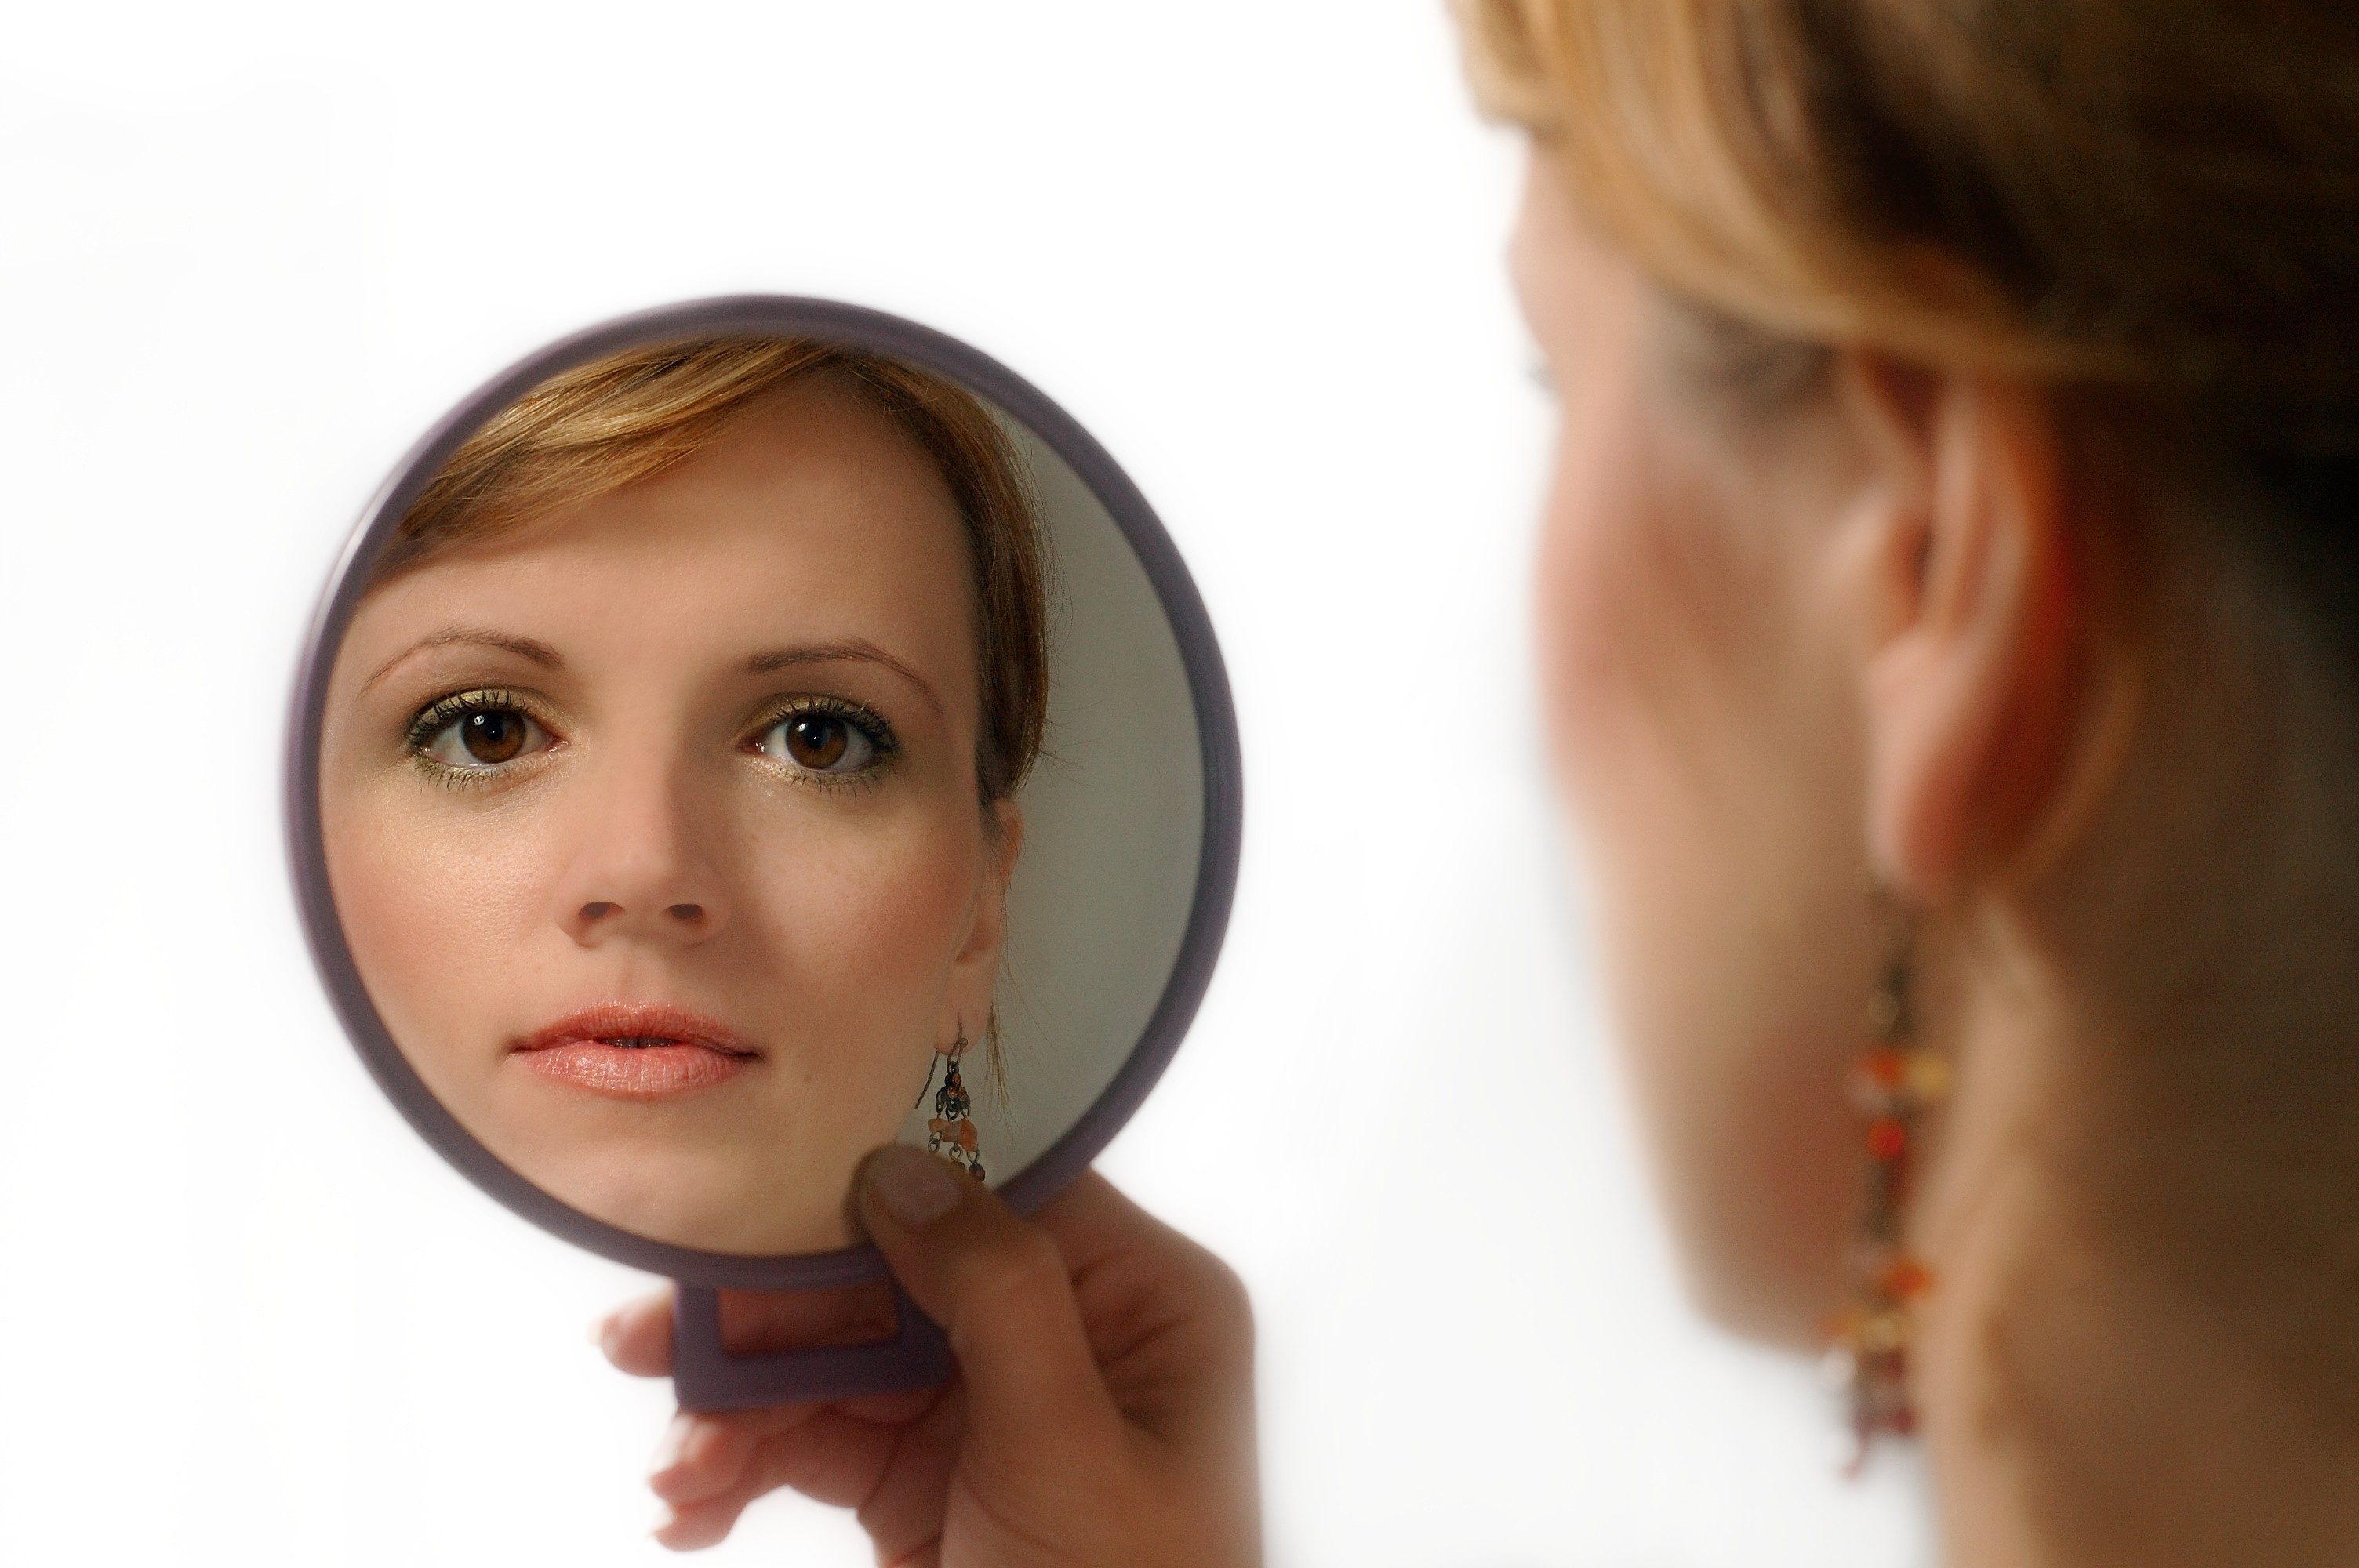 meet yourself in the mirror